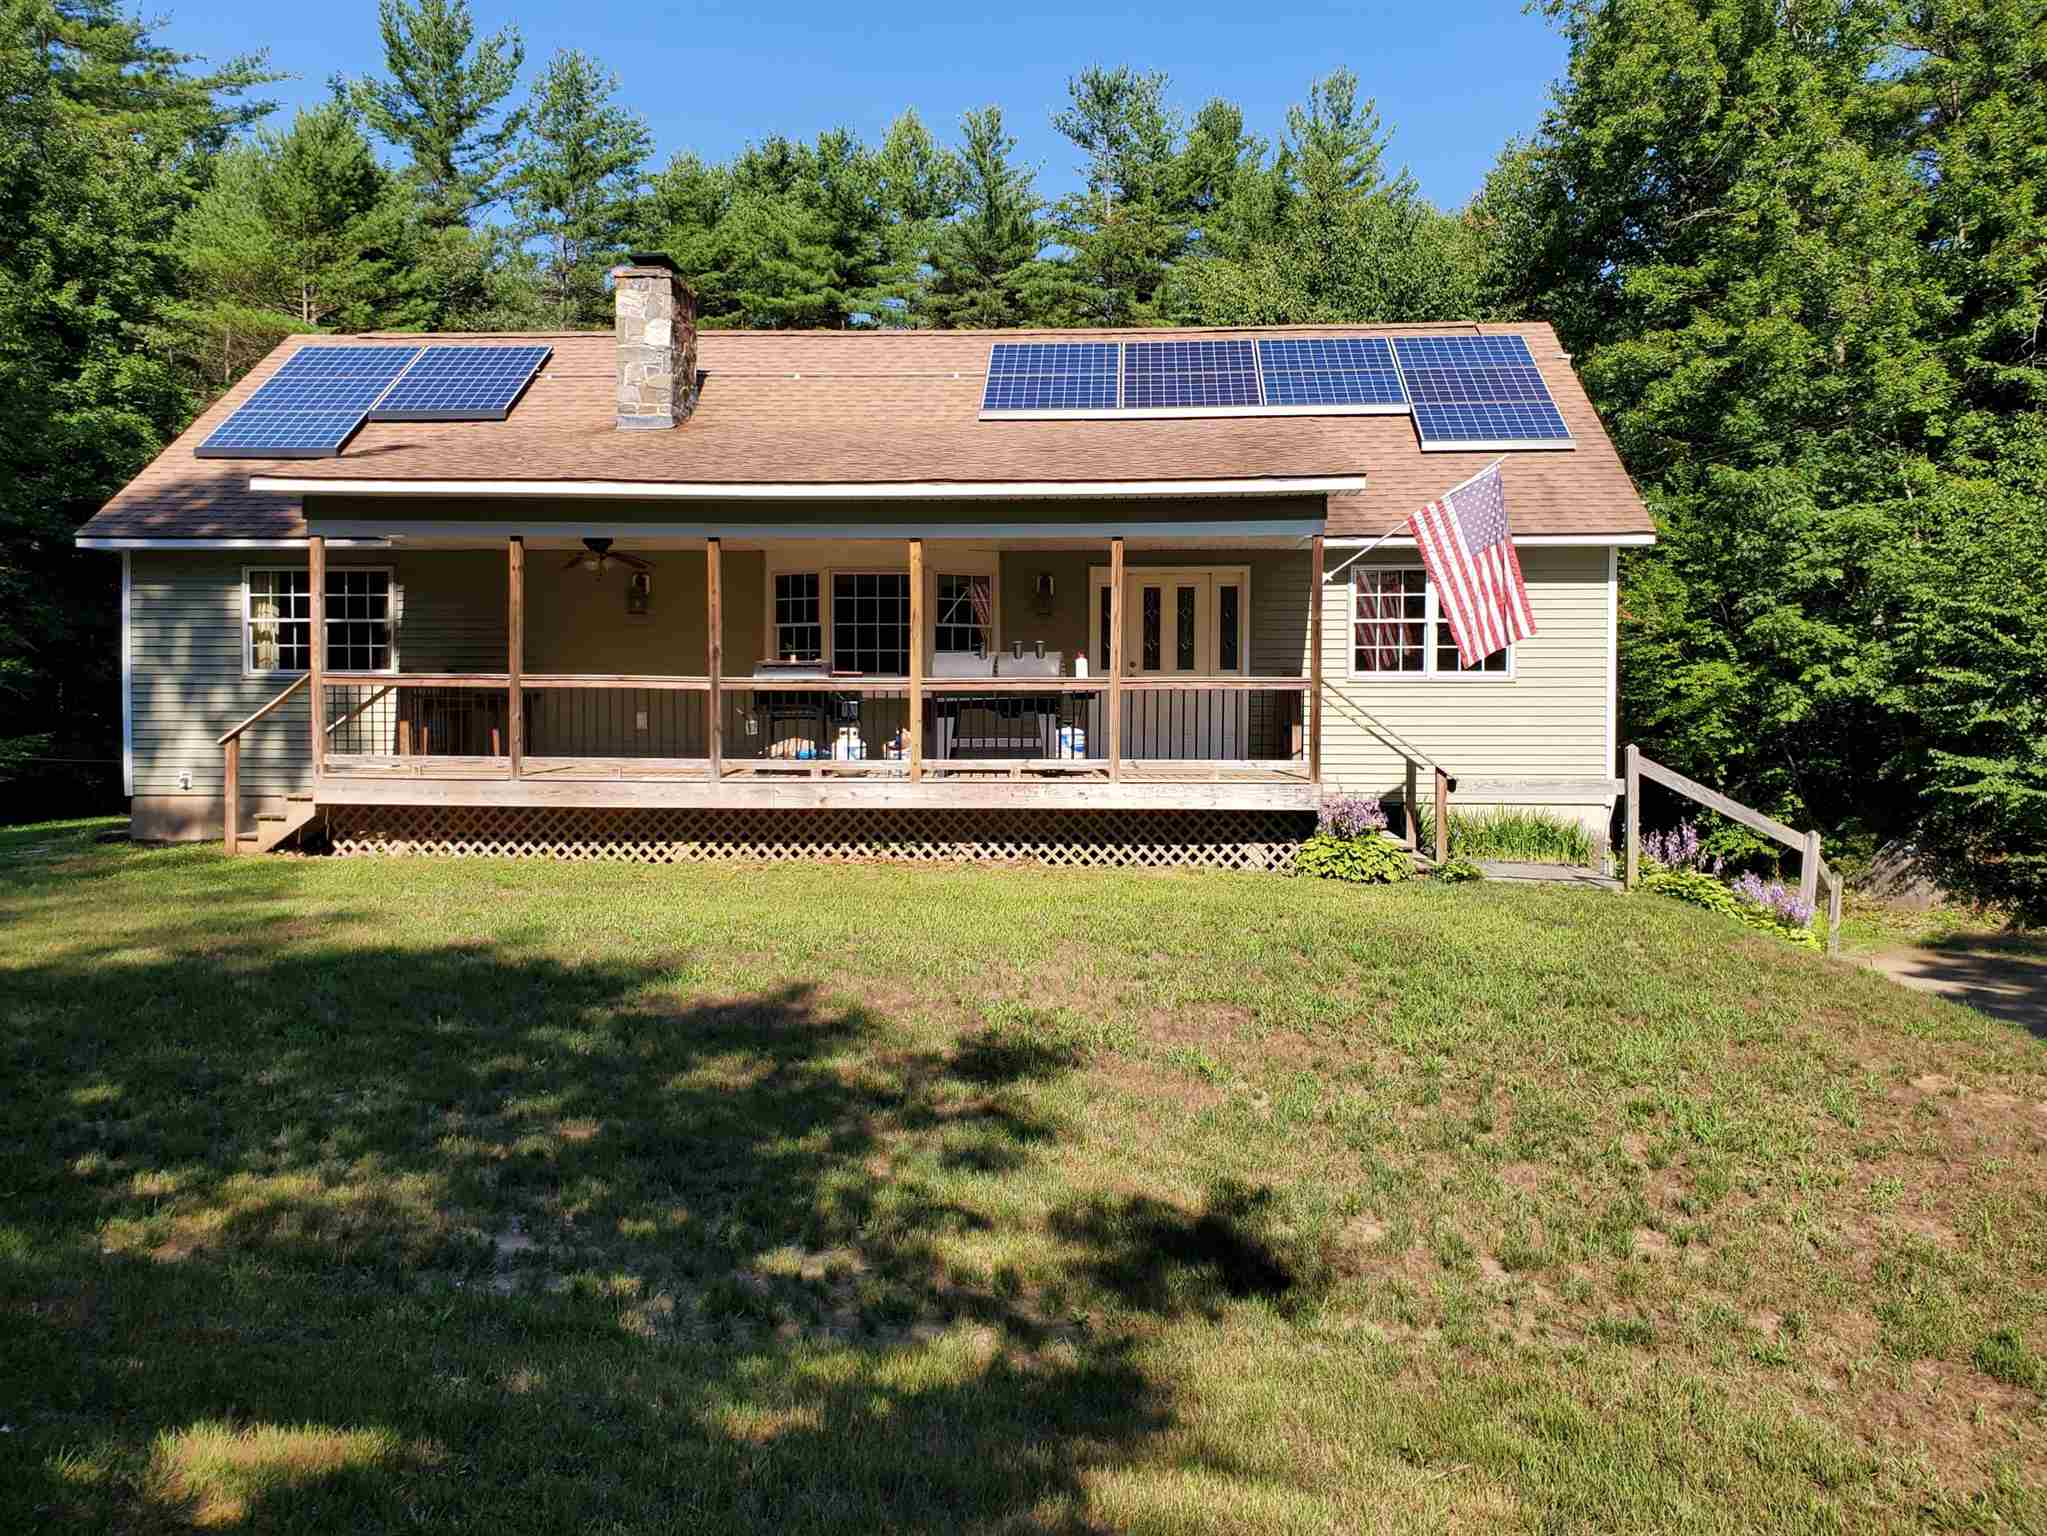 MLS 4773227: 133 Oxbow Road, Hinsdale NH